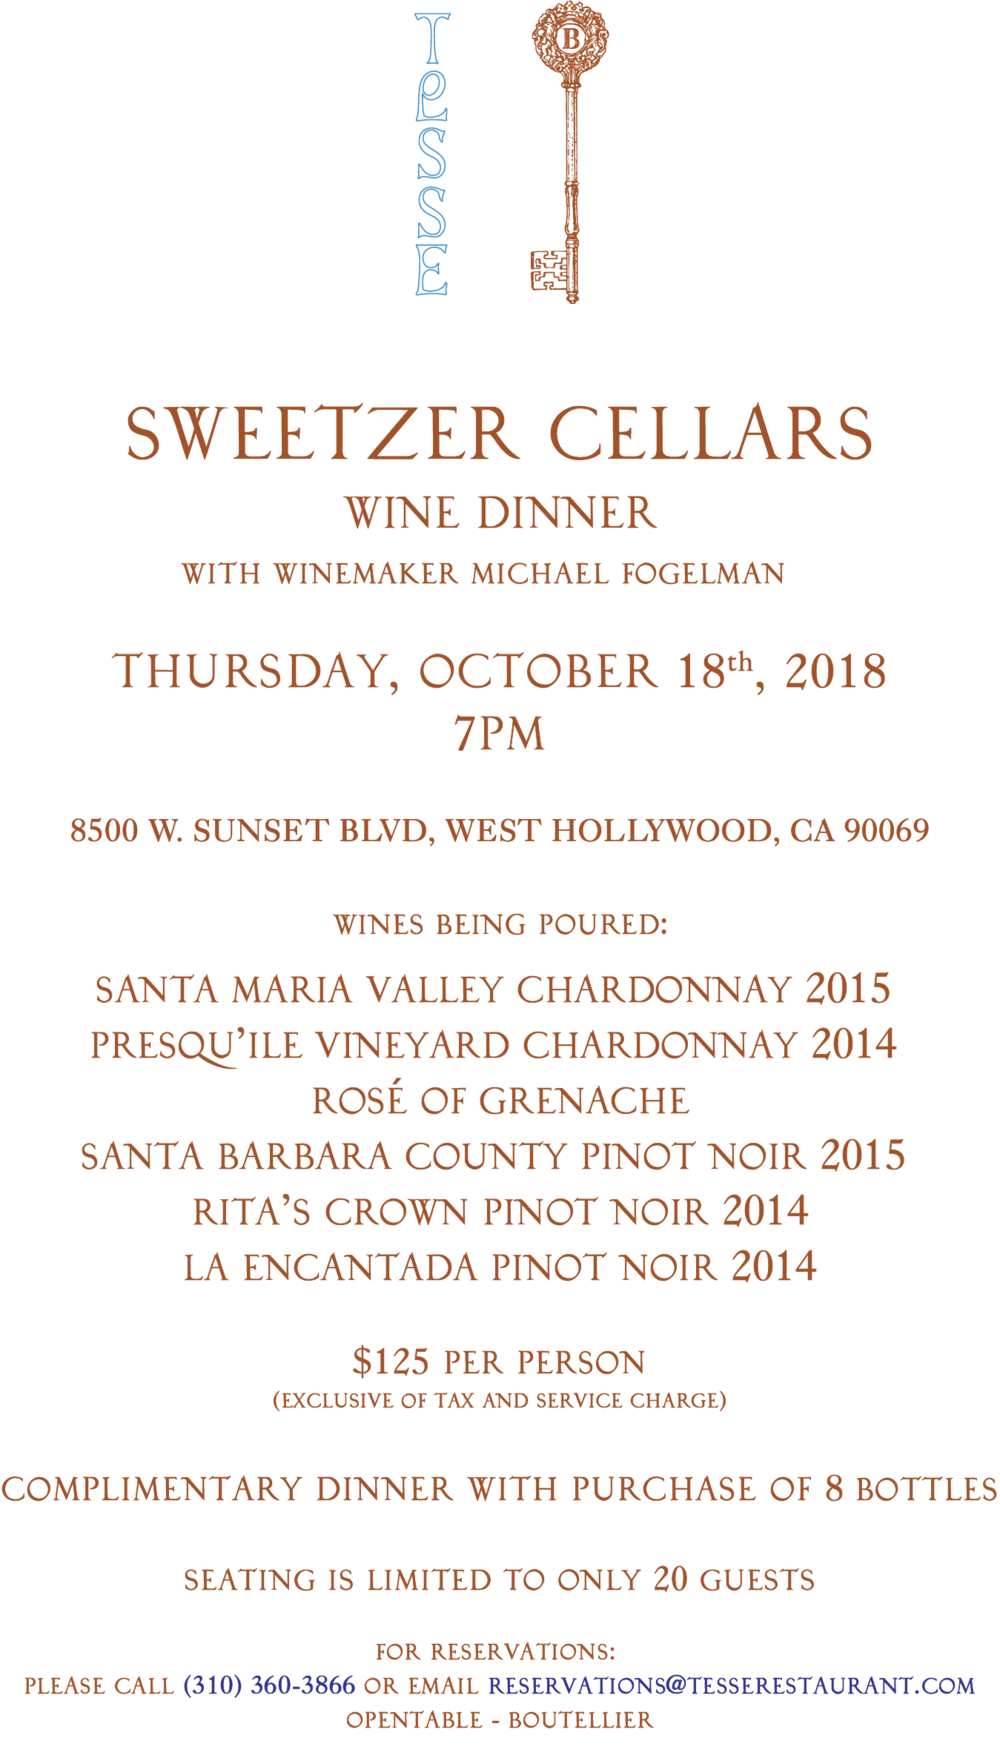 Sweetzer Cellars Wine Dinner Invite.png